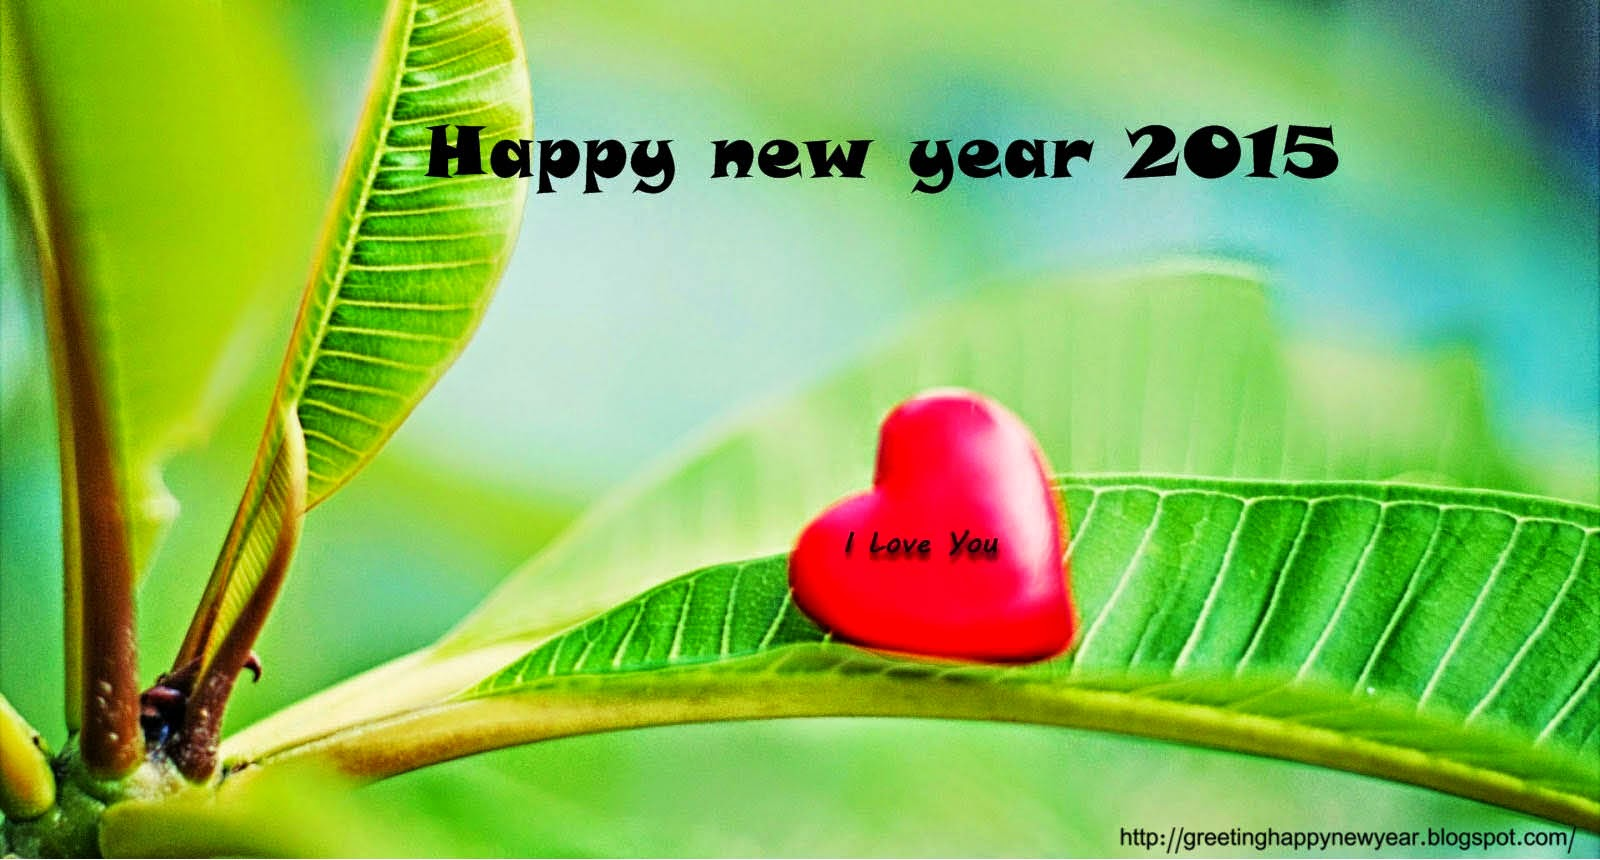 Happy New Year 2015 Loving Cards For Friends - Latest Free Downloads